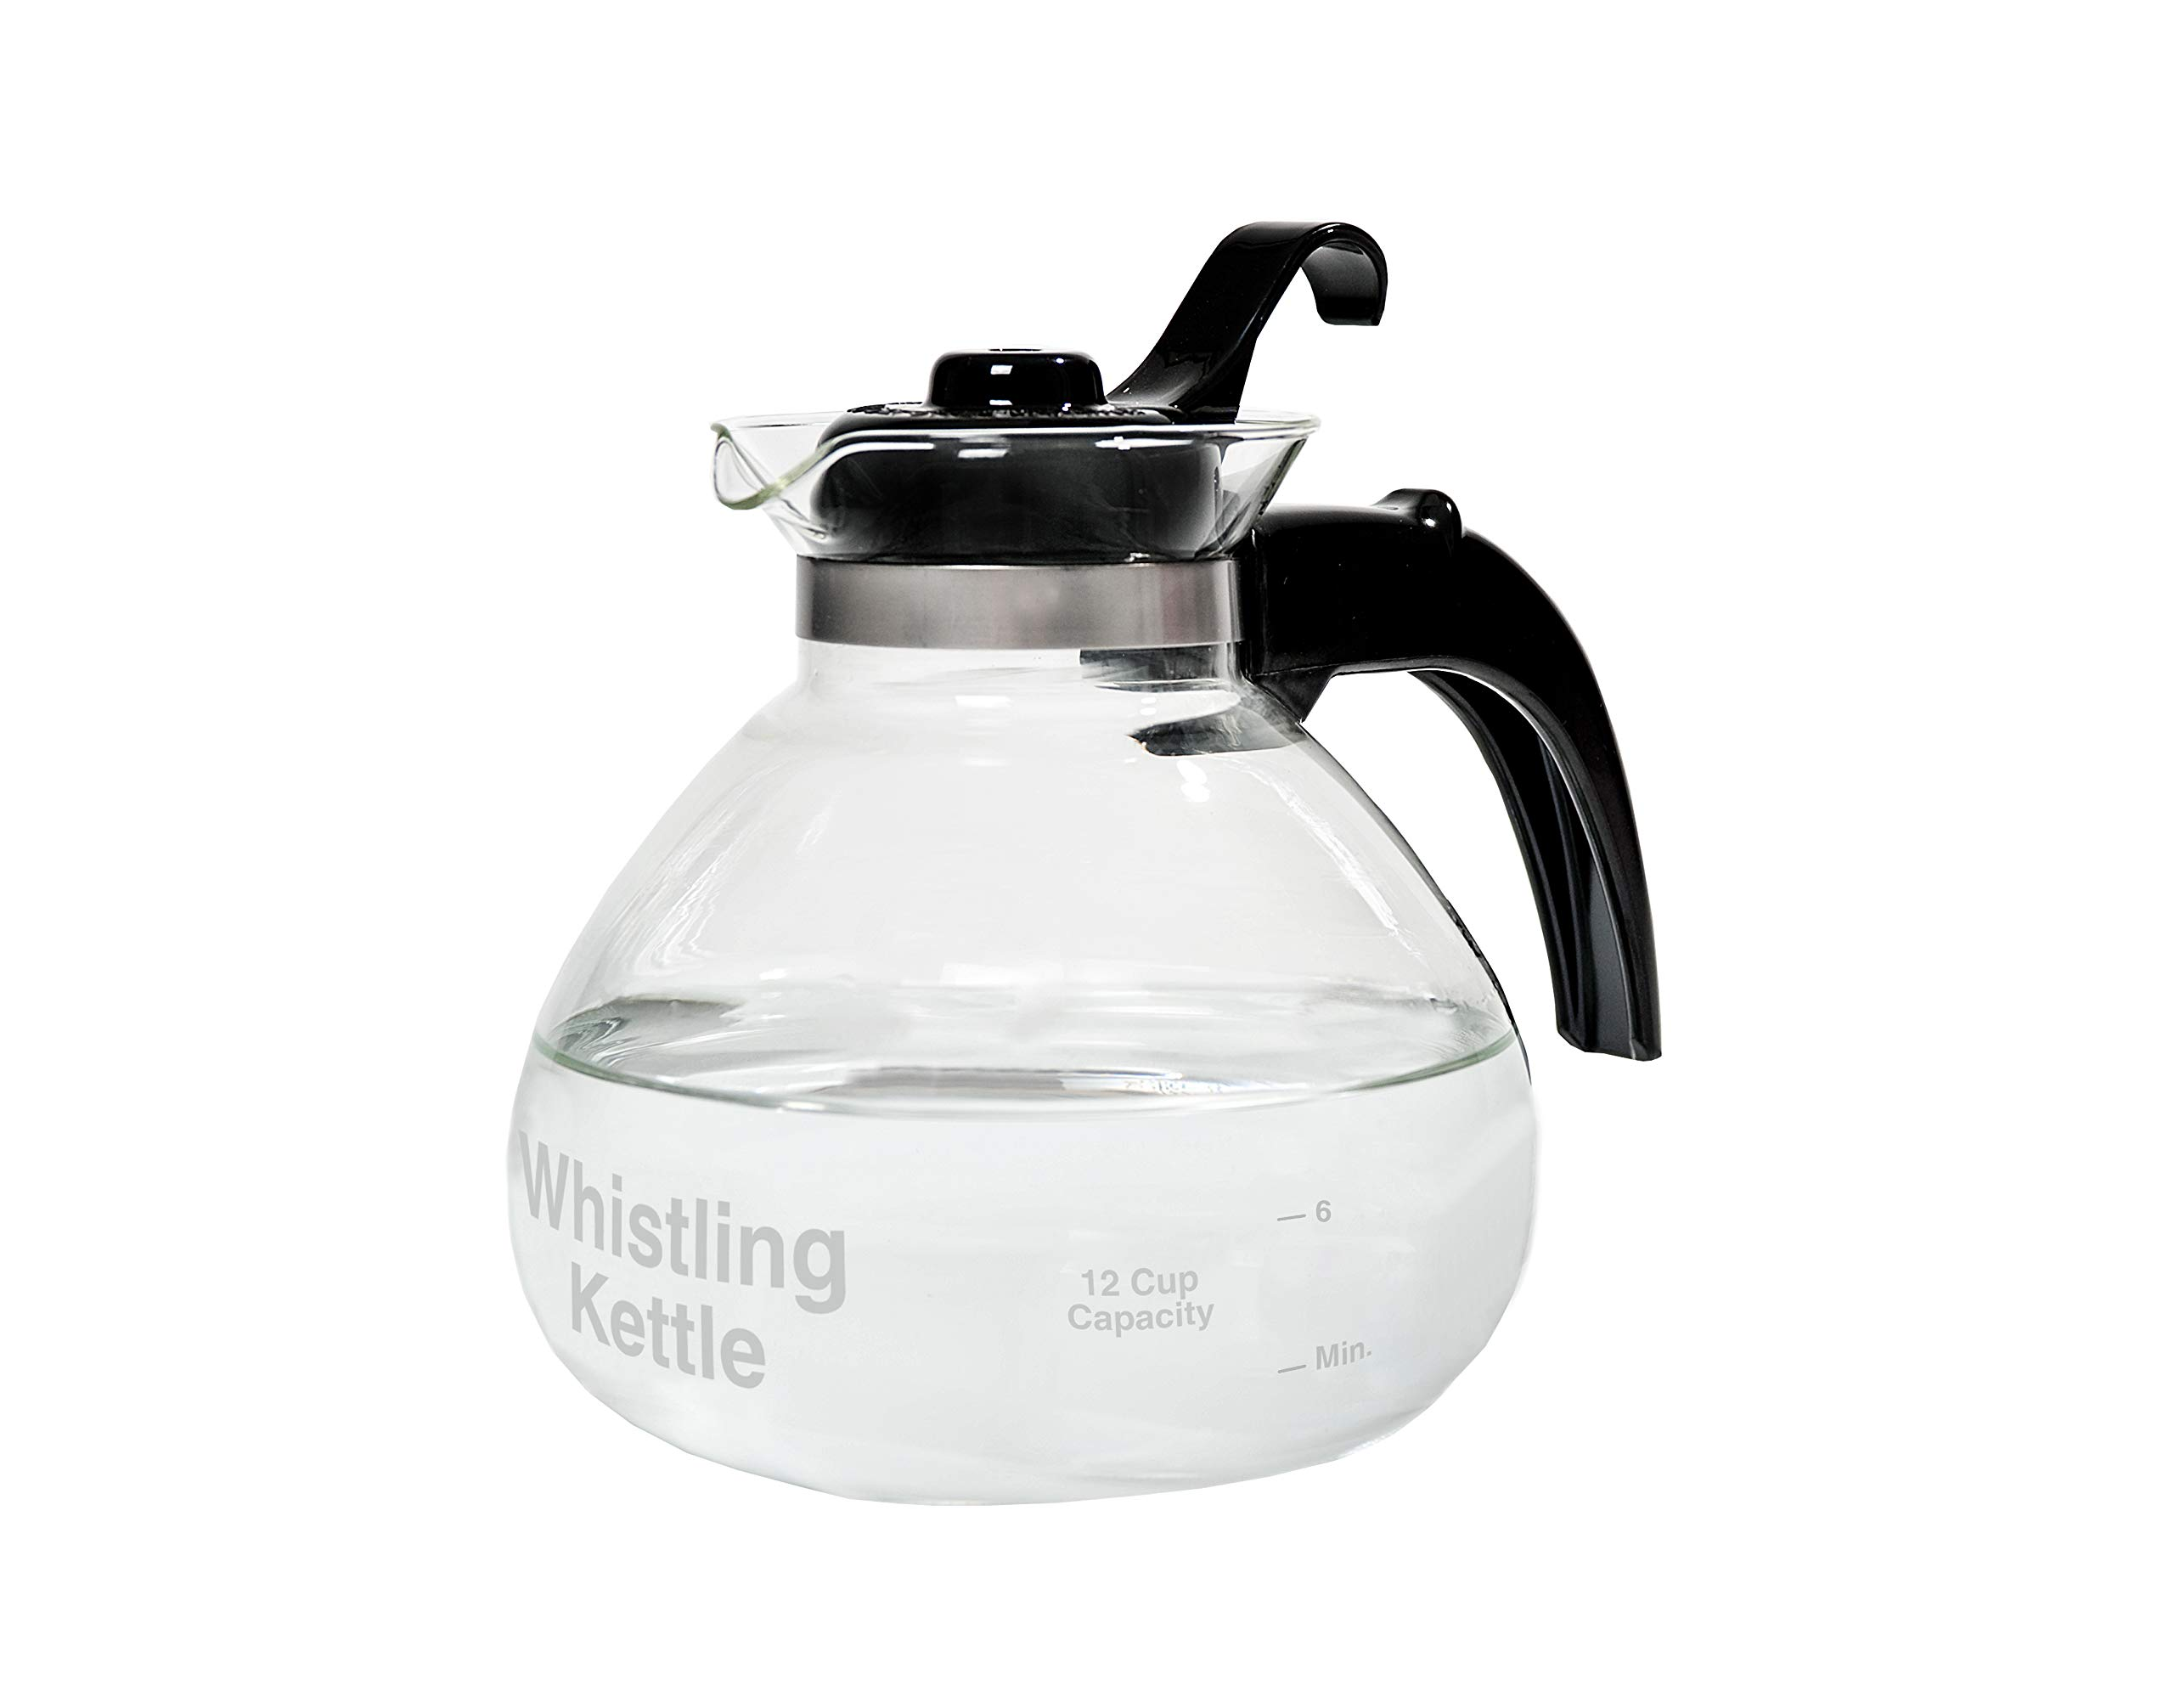 CAFÉ BREW COLLECTION WK112 Cafe Brew 12 cup Glass Stovetop Whistling Kettle, c by CAFÉ BREW COLLECTION